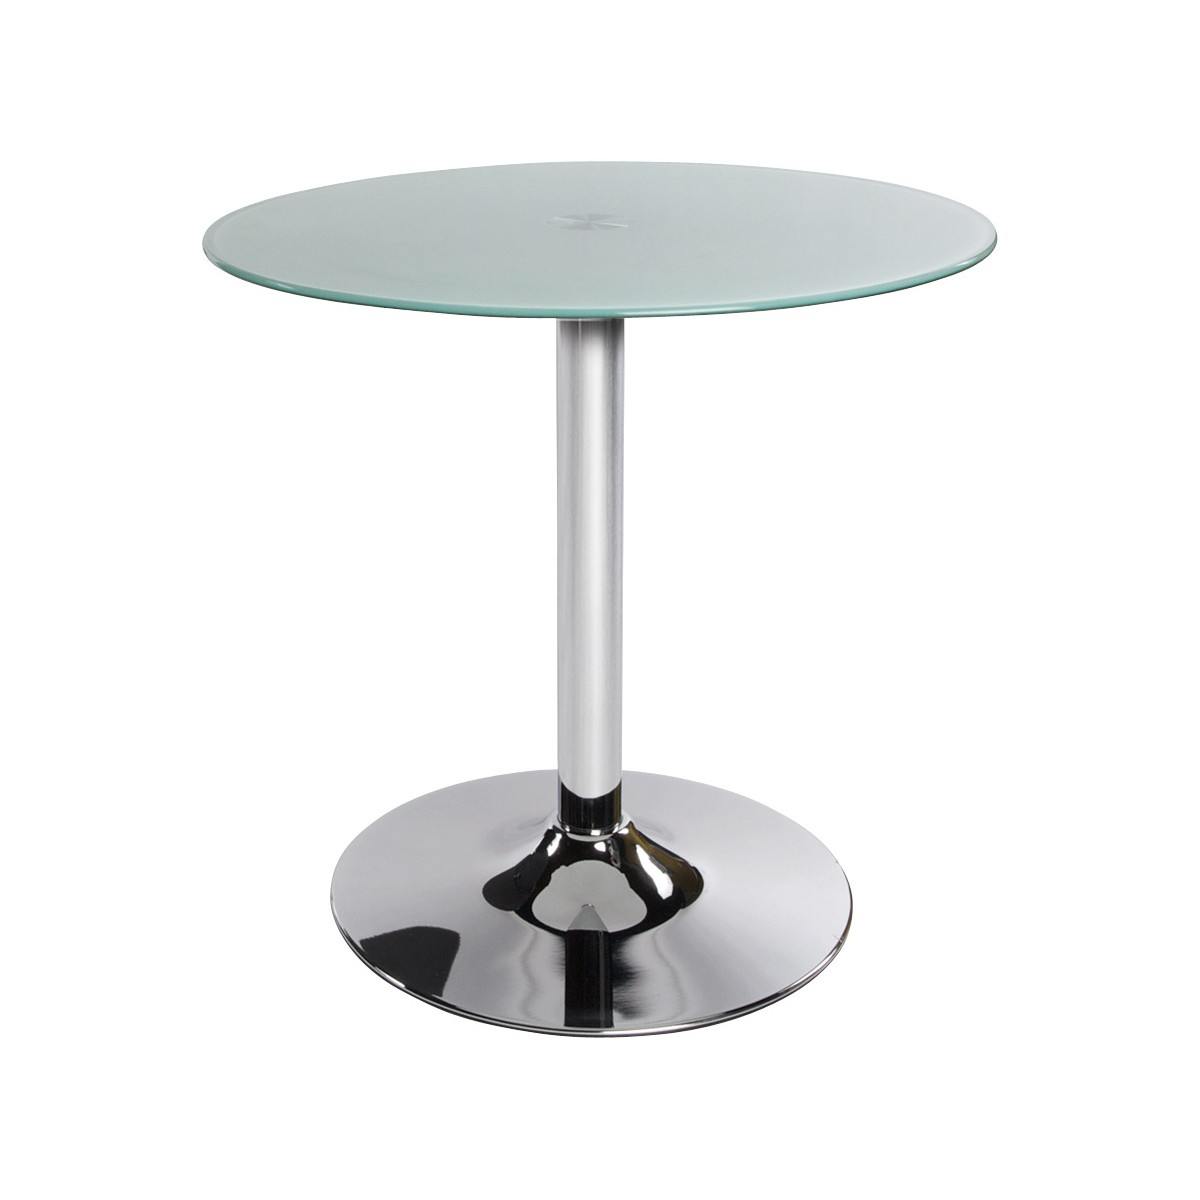 Table verre trempe blanc maison design for Table de cuisine en verre trempe